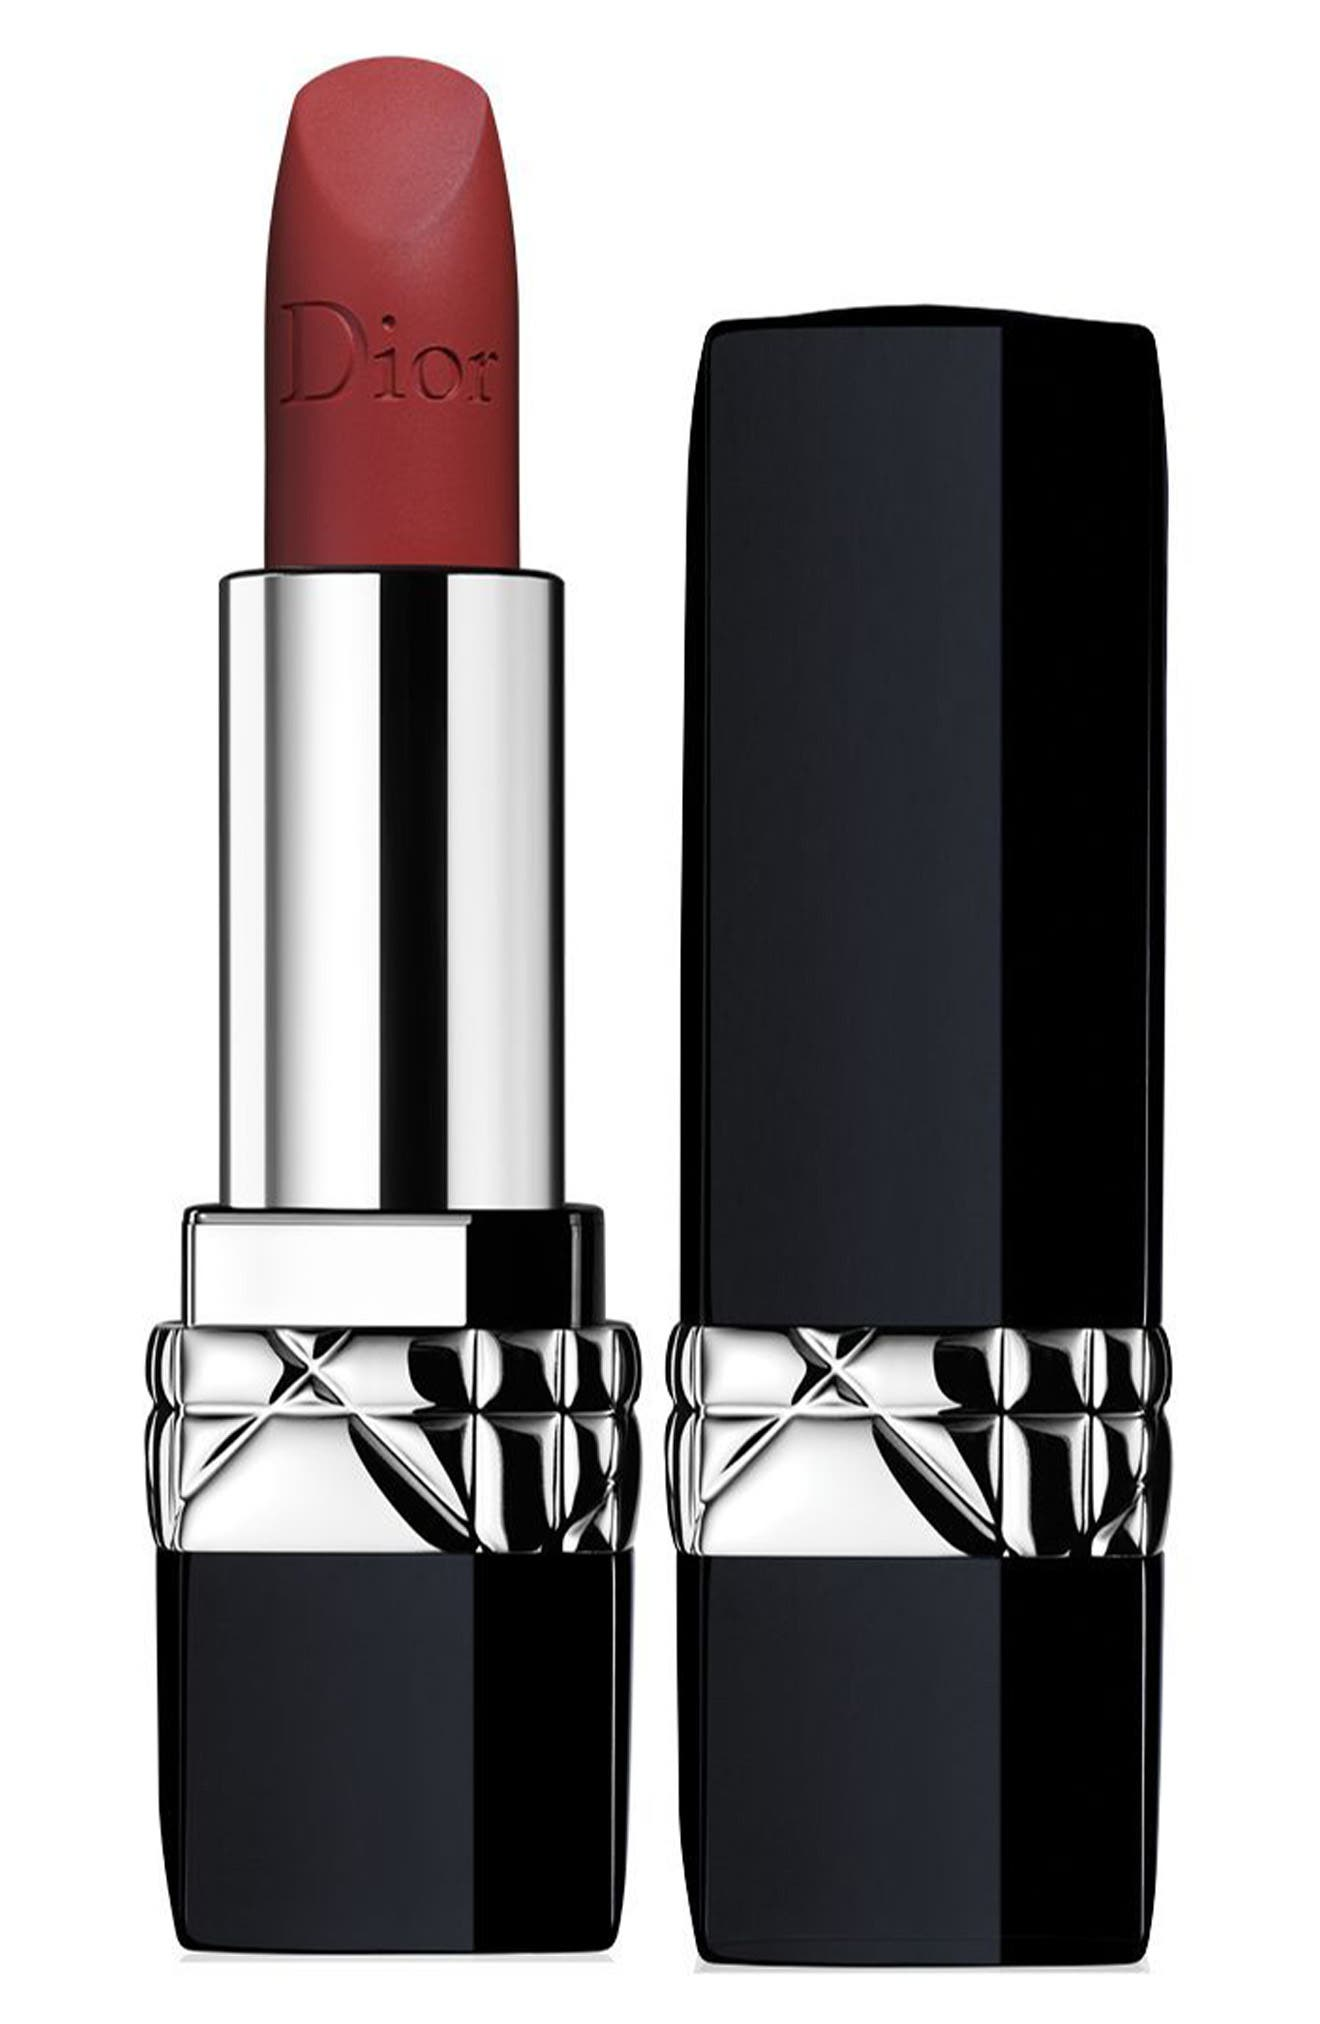 Dior Couture Color Rouge Dior Lipstick - 745 Terrific Matte